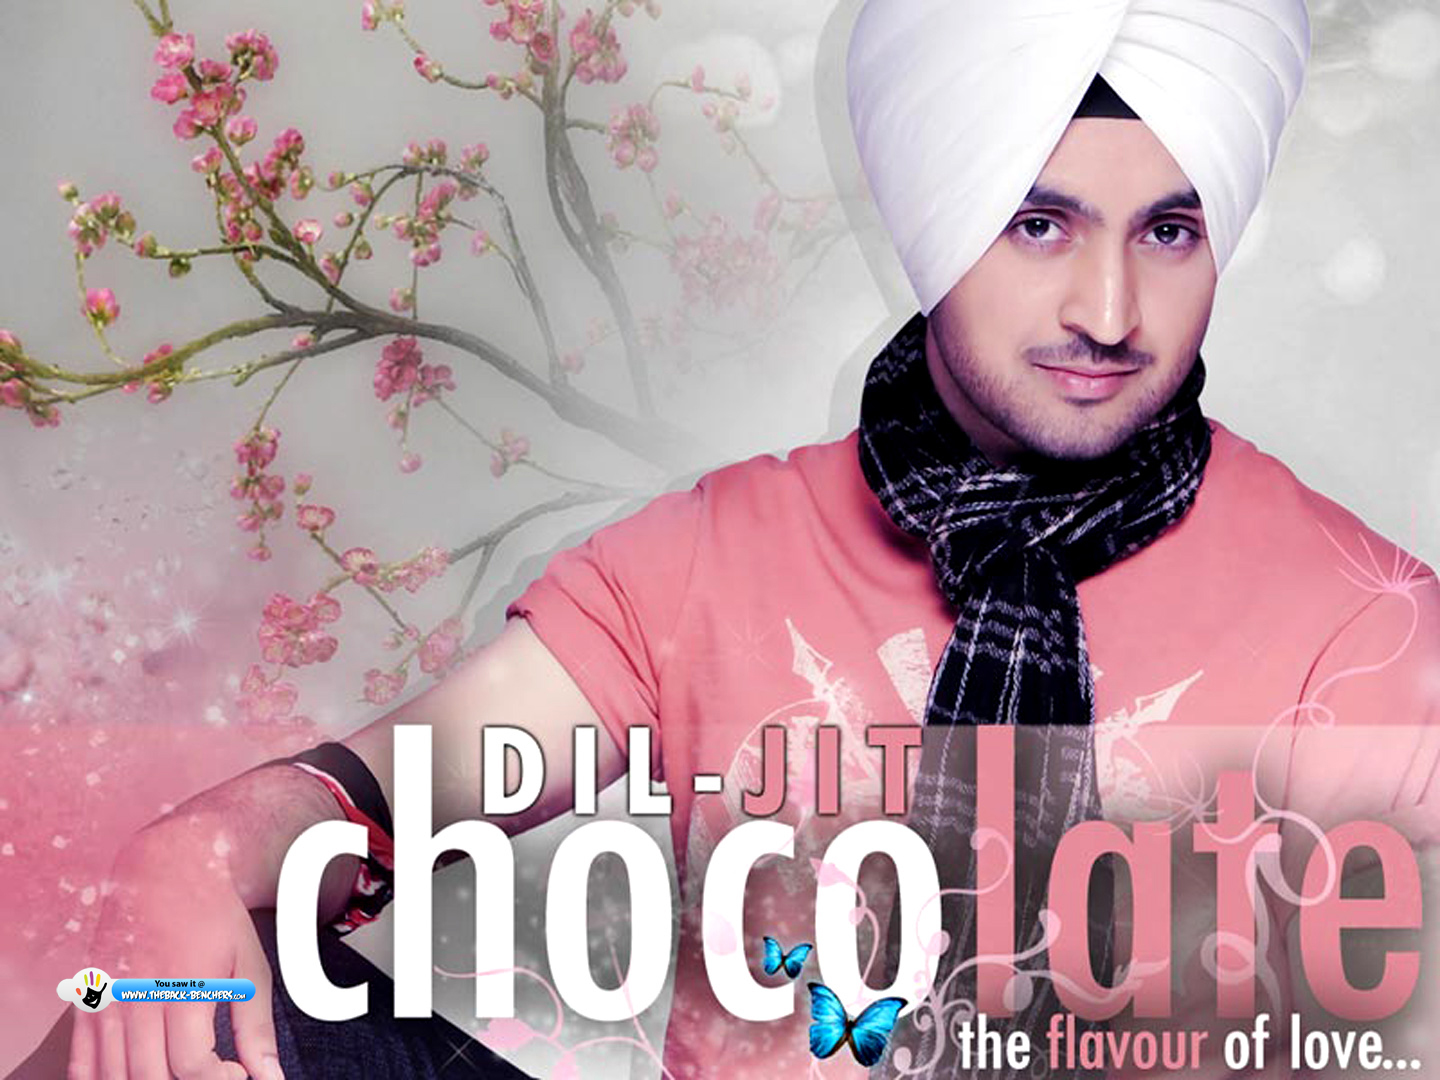 Diljit Dosanjh Wallpapers Large thumb